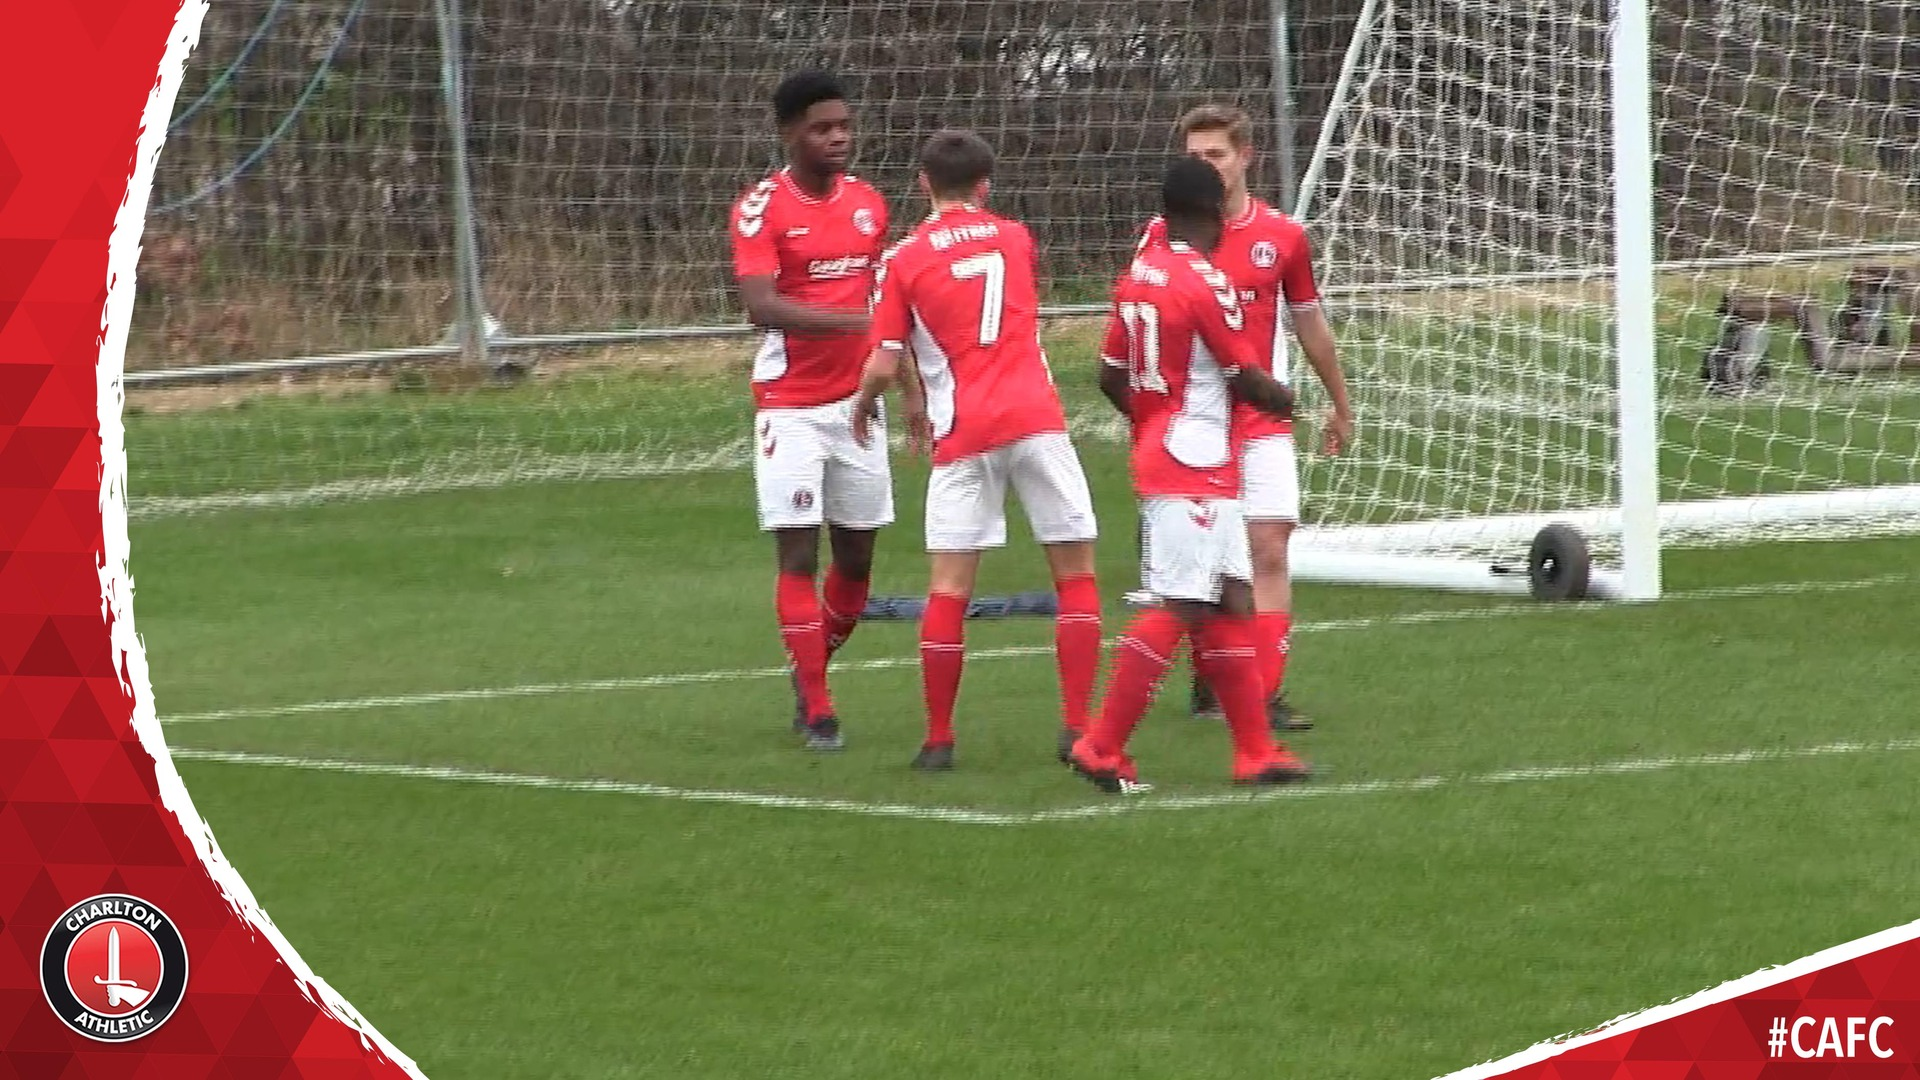 U18S HIGHLIGHTS | Charlton 6 Coventry City 0